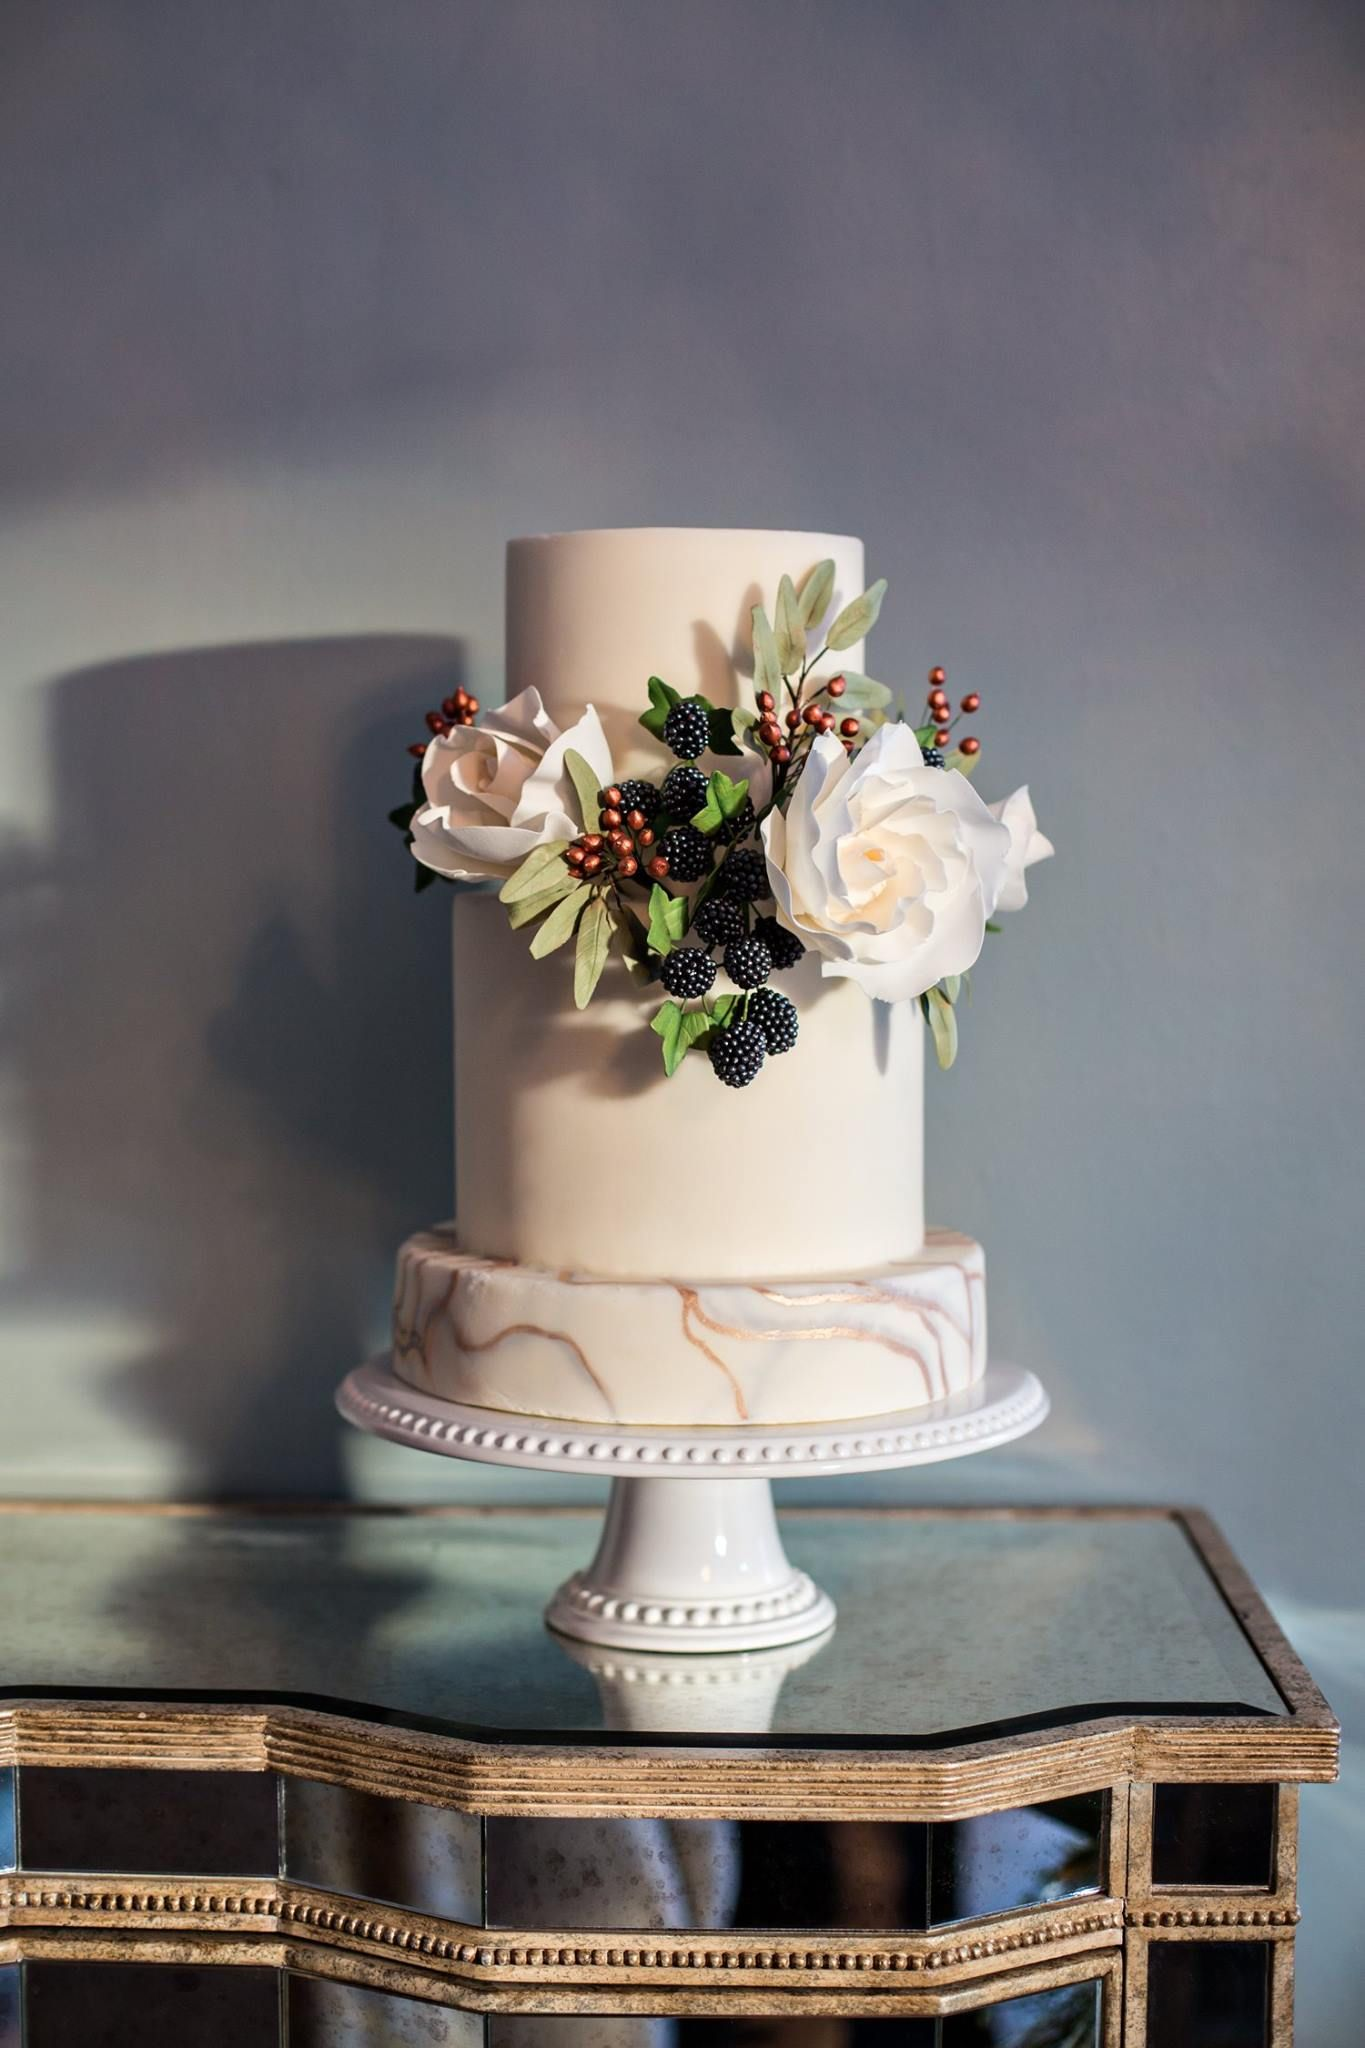 Pin by gina on pure sweetness pinterest cake wedding cakes and